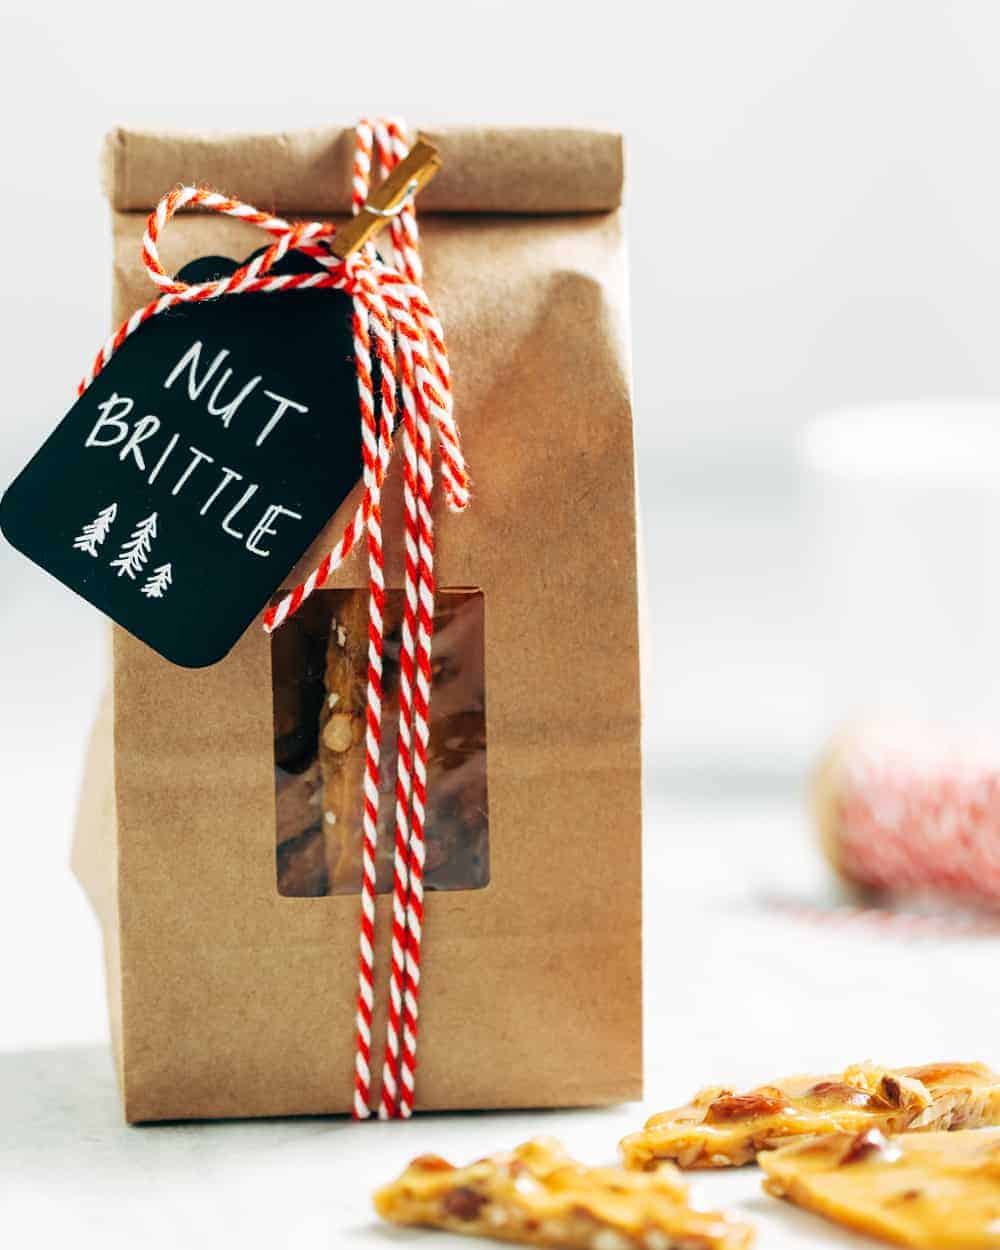 This Nut Brittle recipe uses salted mixed nuts for a delicious twist on the holiday classic.